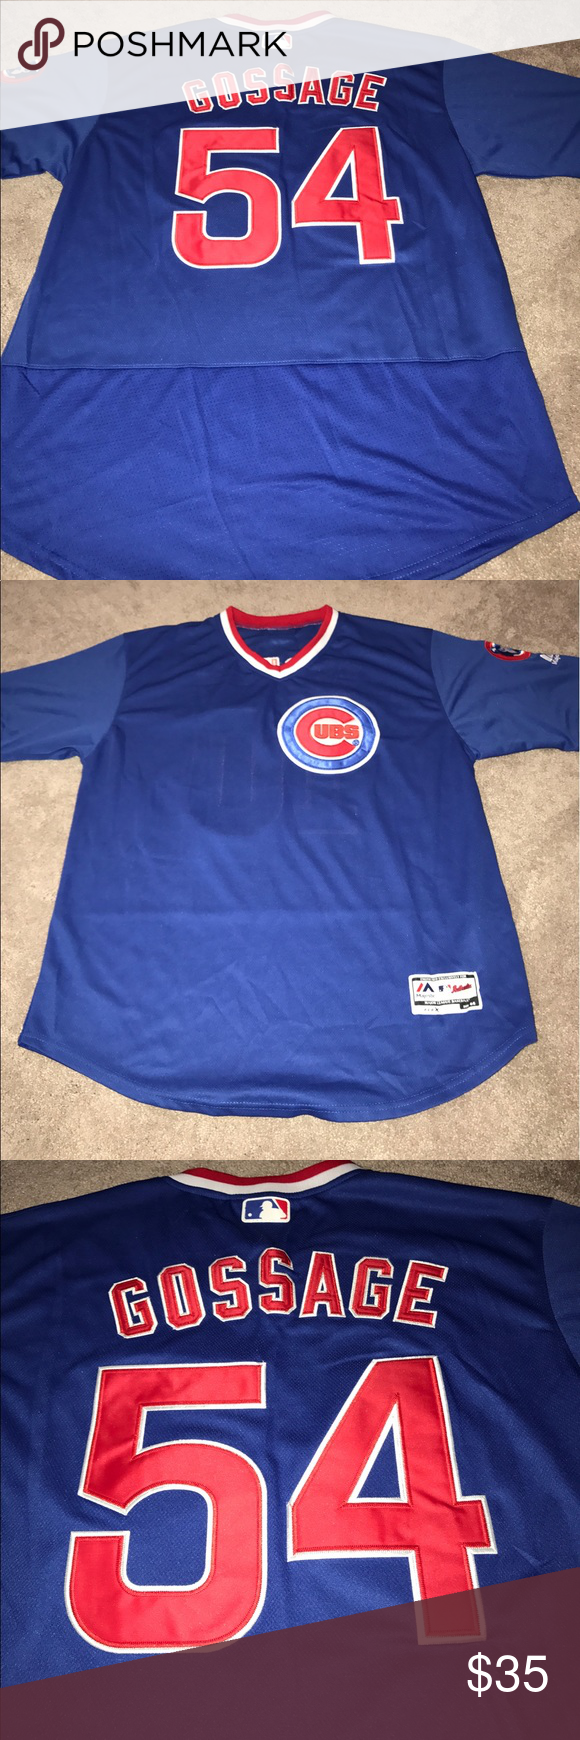 outlet store 63088 ae544 Cubs 1984 Goose Gossage Throwback jersey (L) Men's Chicago ...